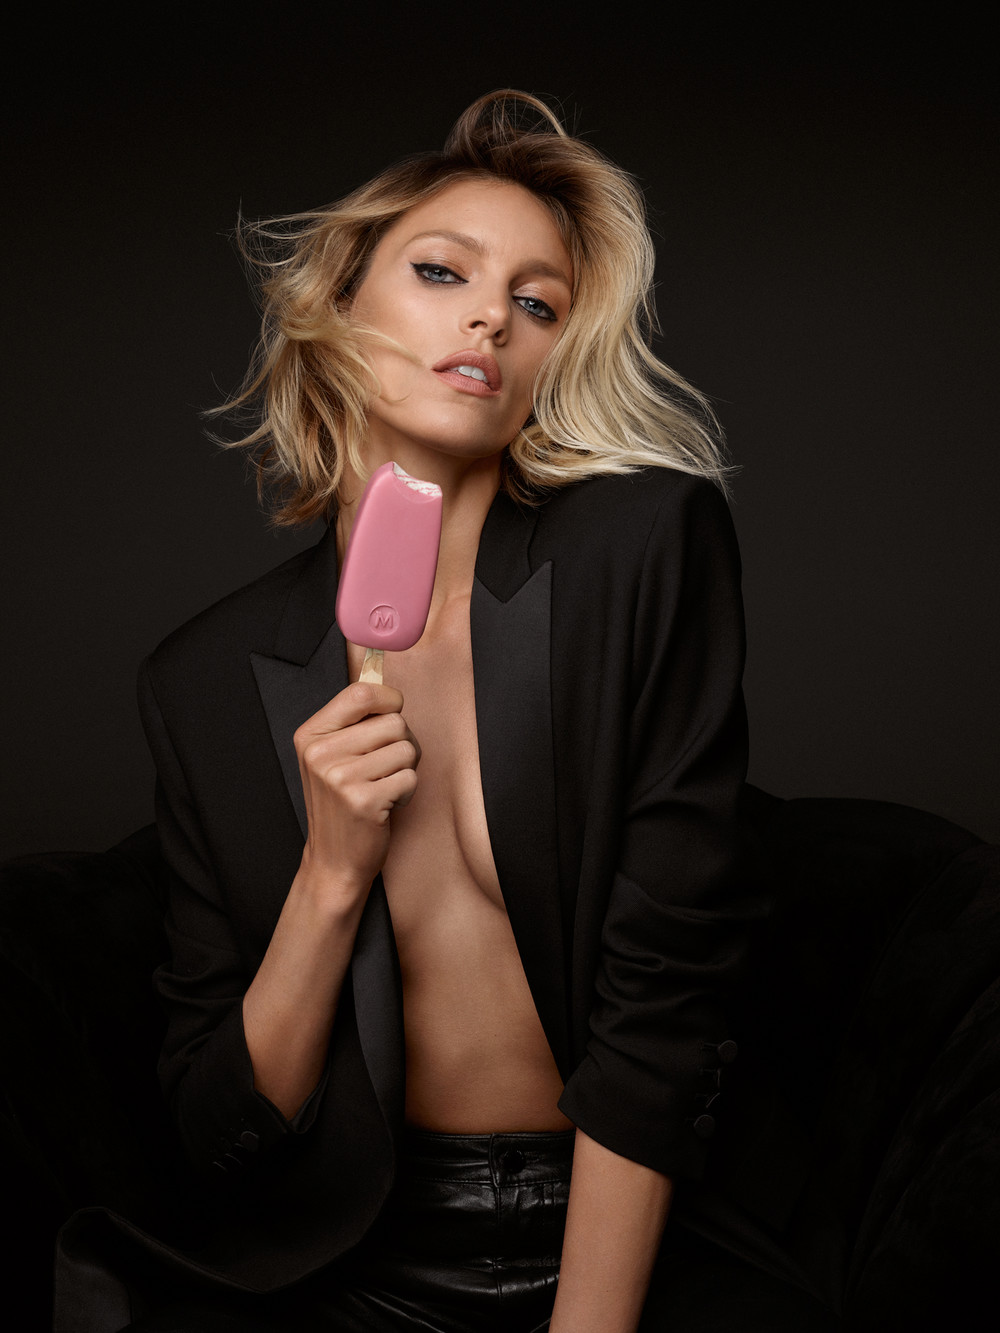 ANJA RUBIK BY MARCIN KEMPSKI FOR MAGNUM